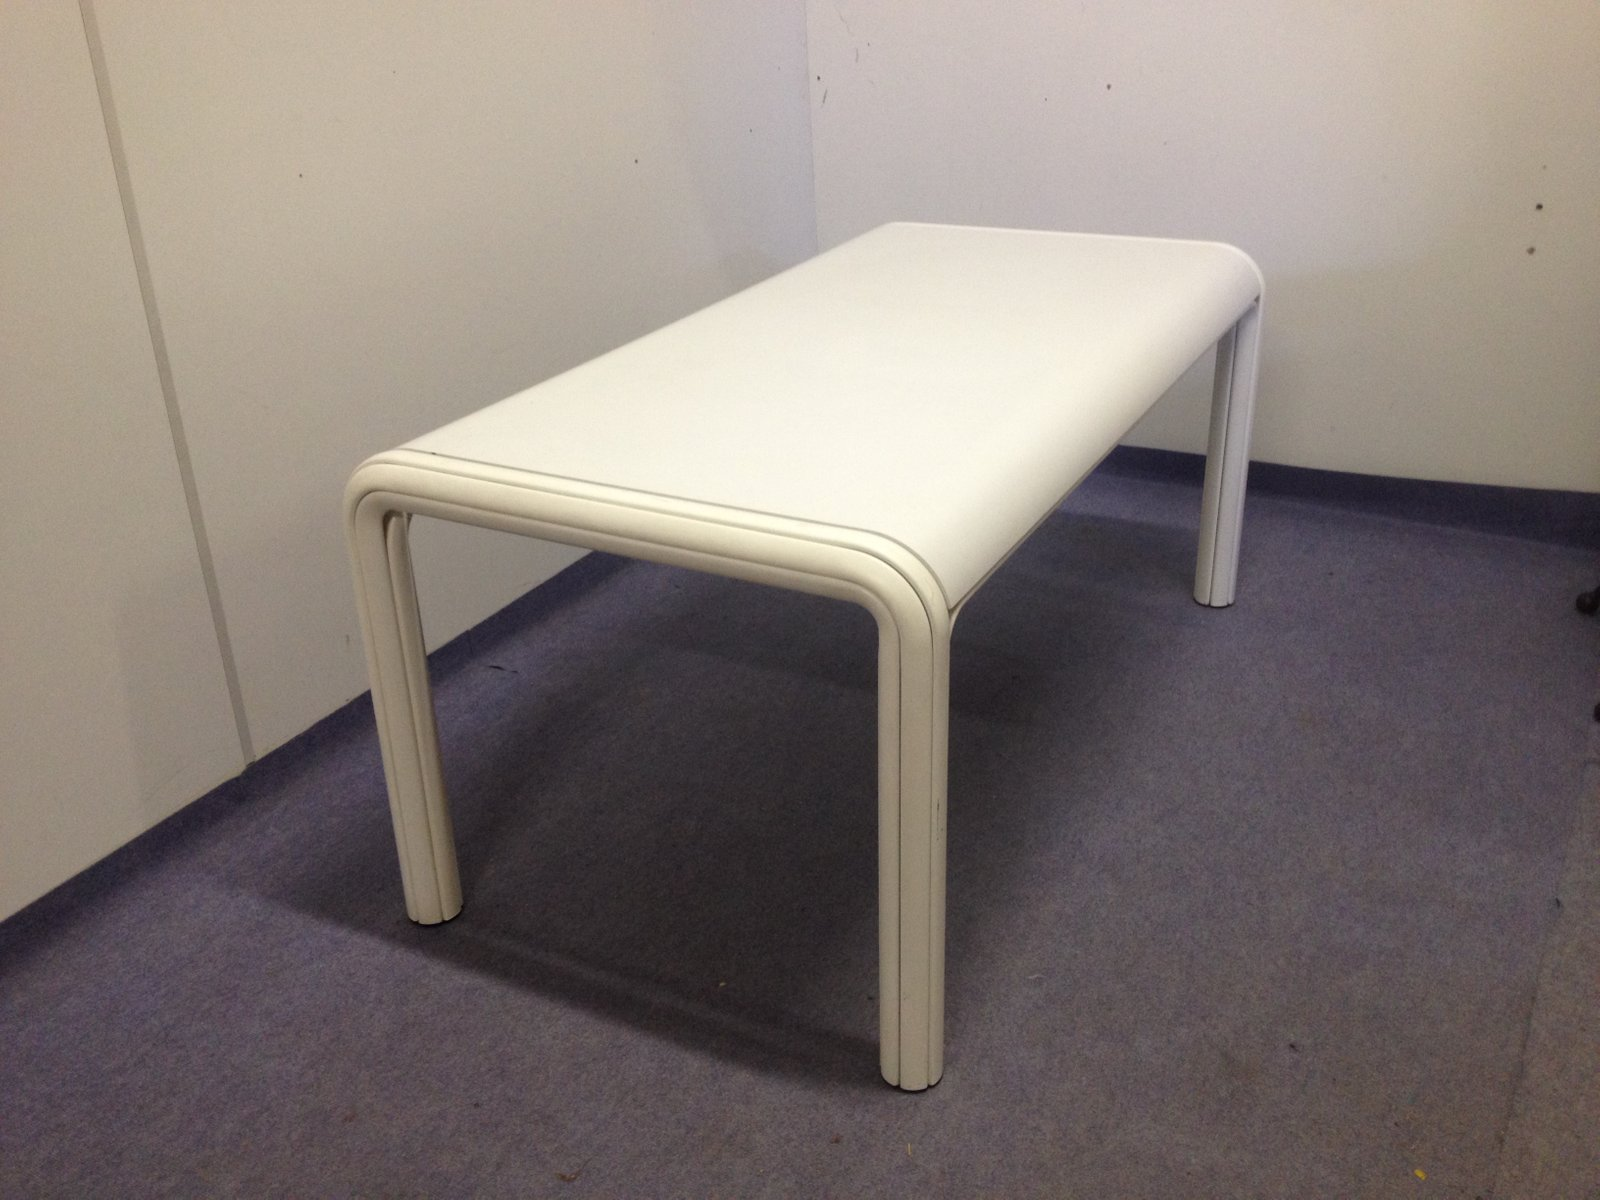 Vintage Orsay Dining Table by Gae Aulenti for Knoll for sale at Pamono